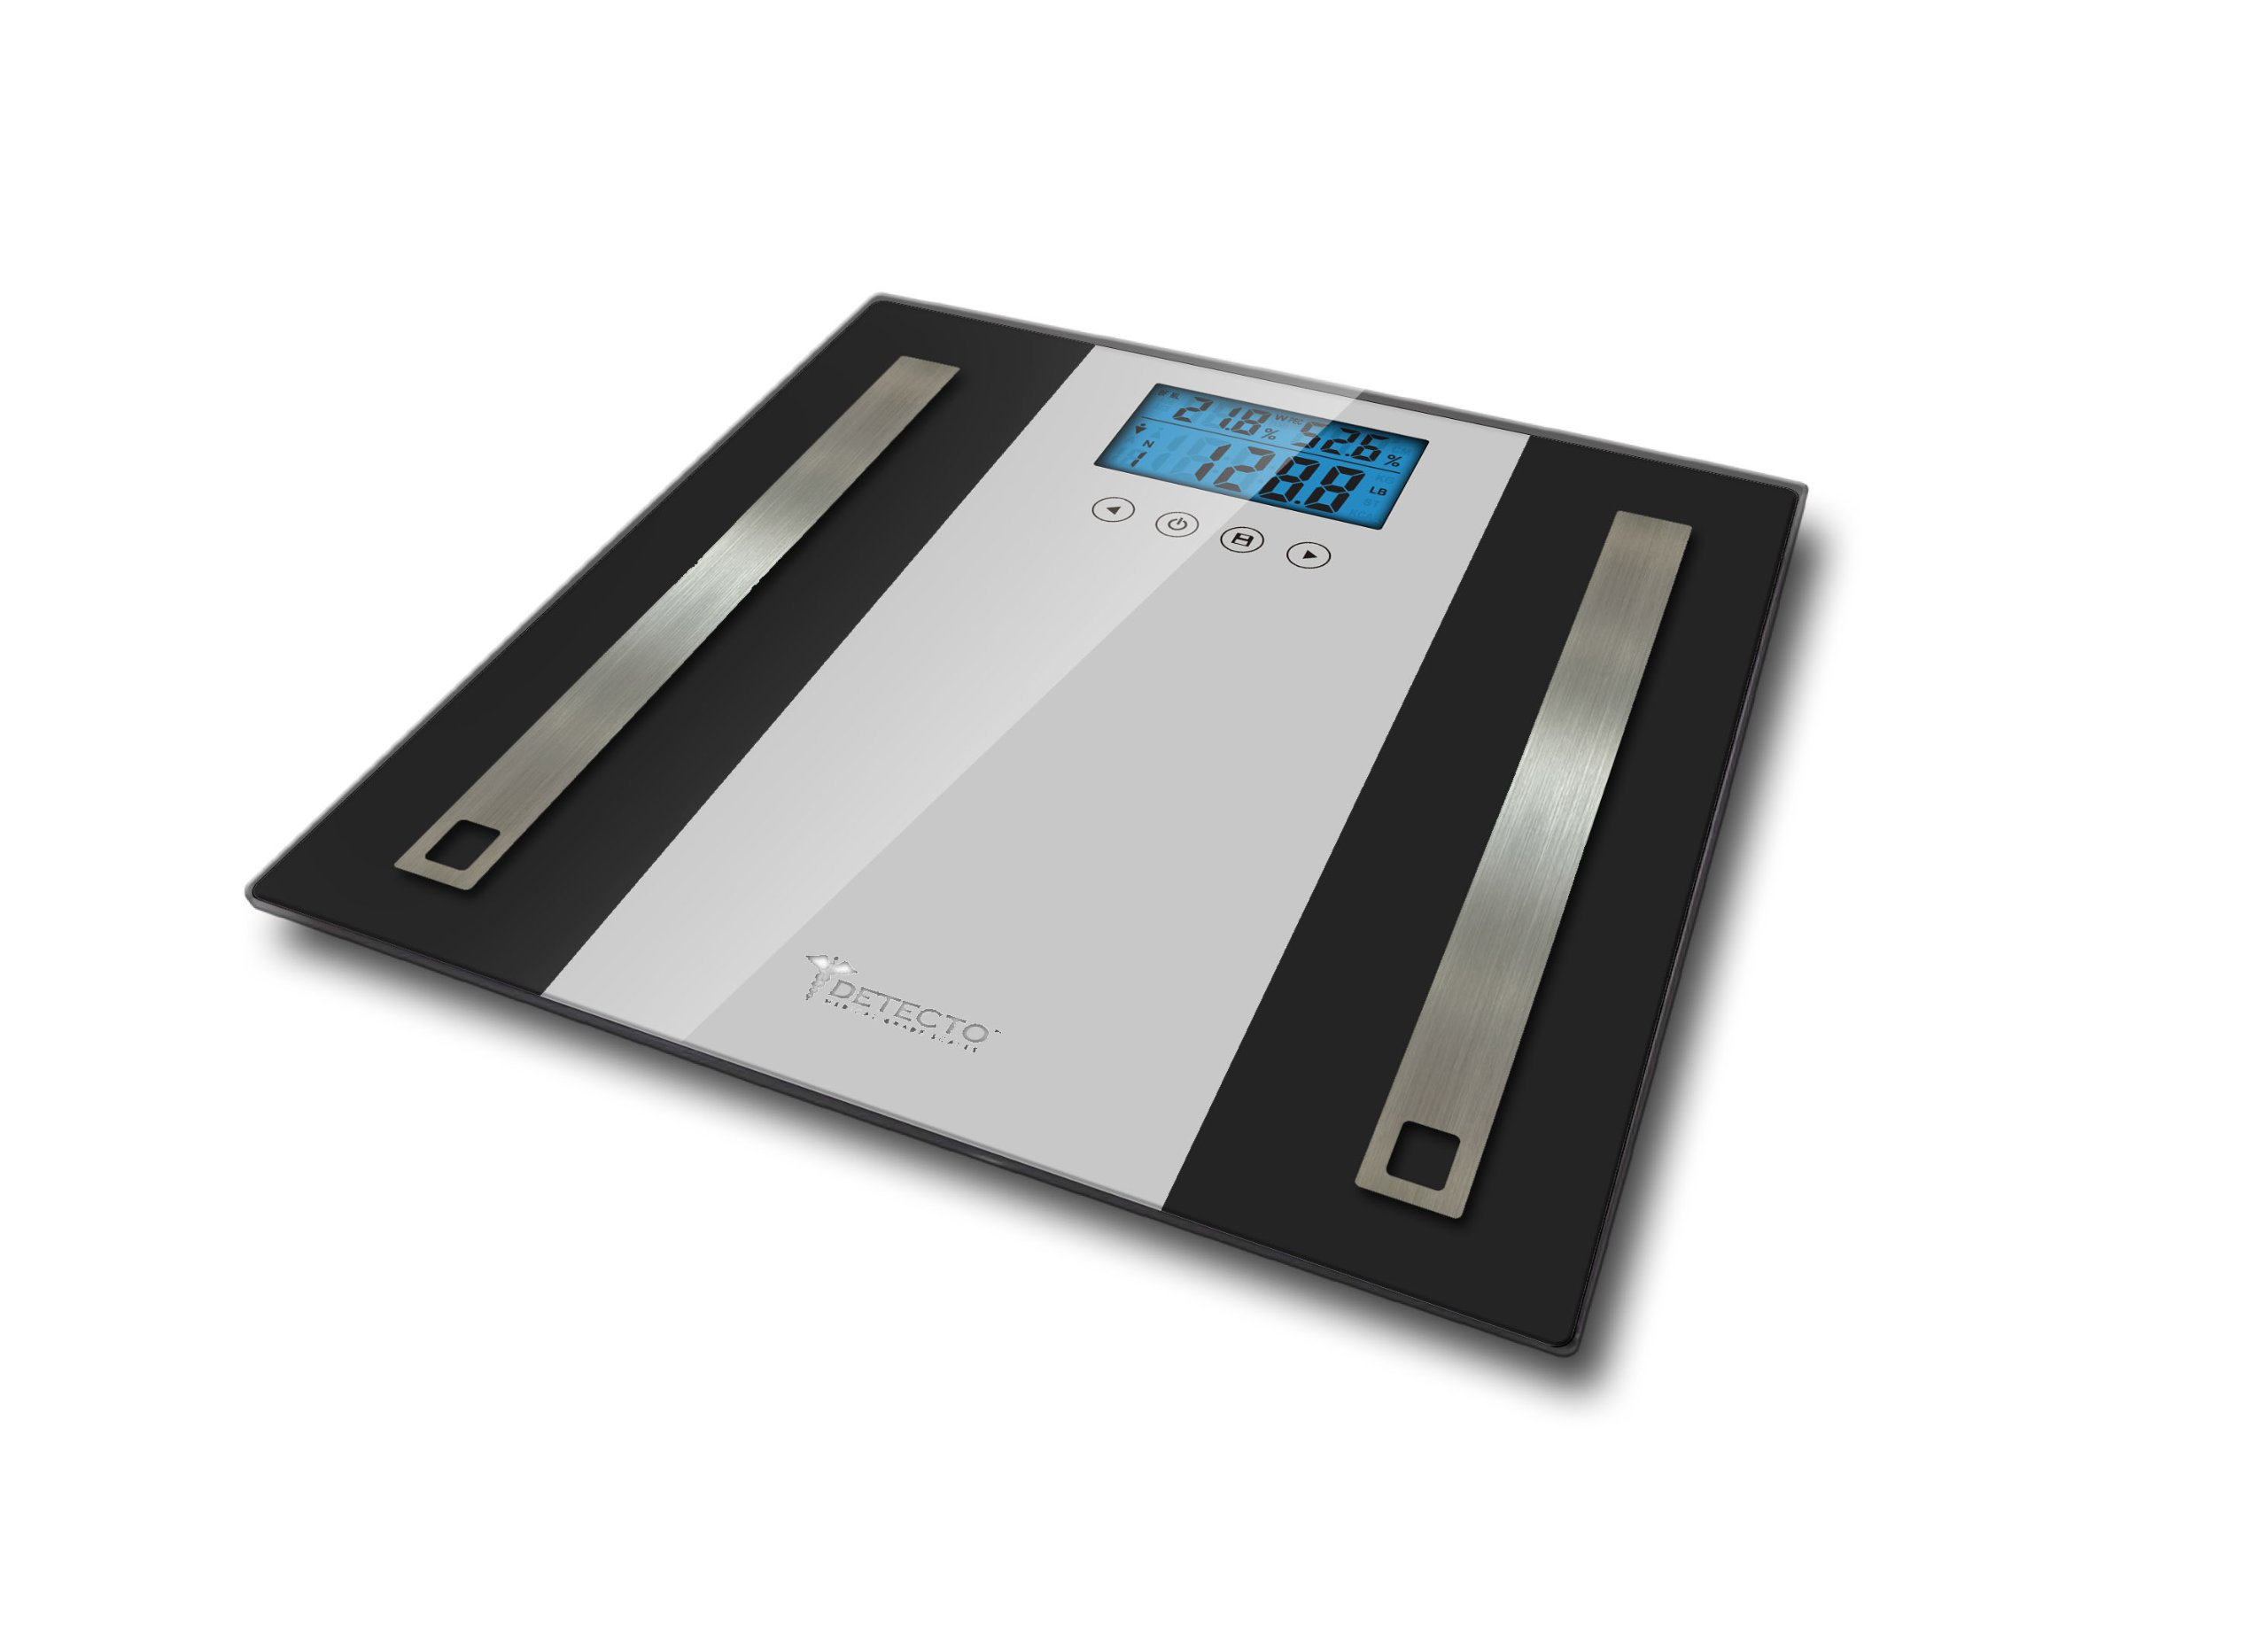 Detecto Glass LCD Digital Body Composition Scale, Black, 4 Count